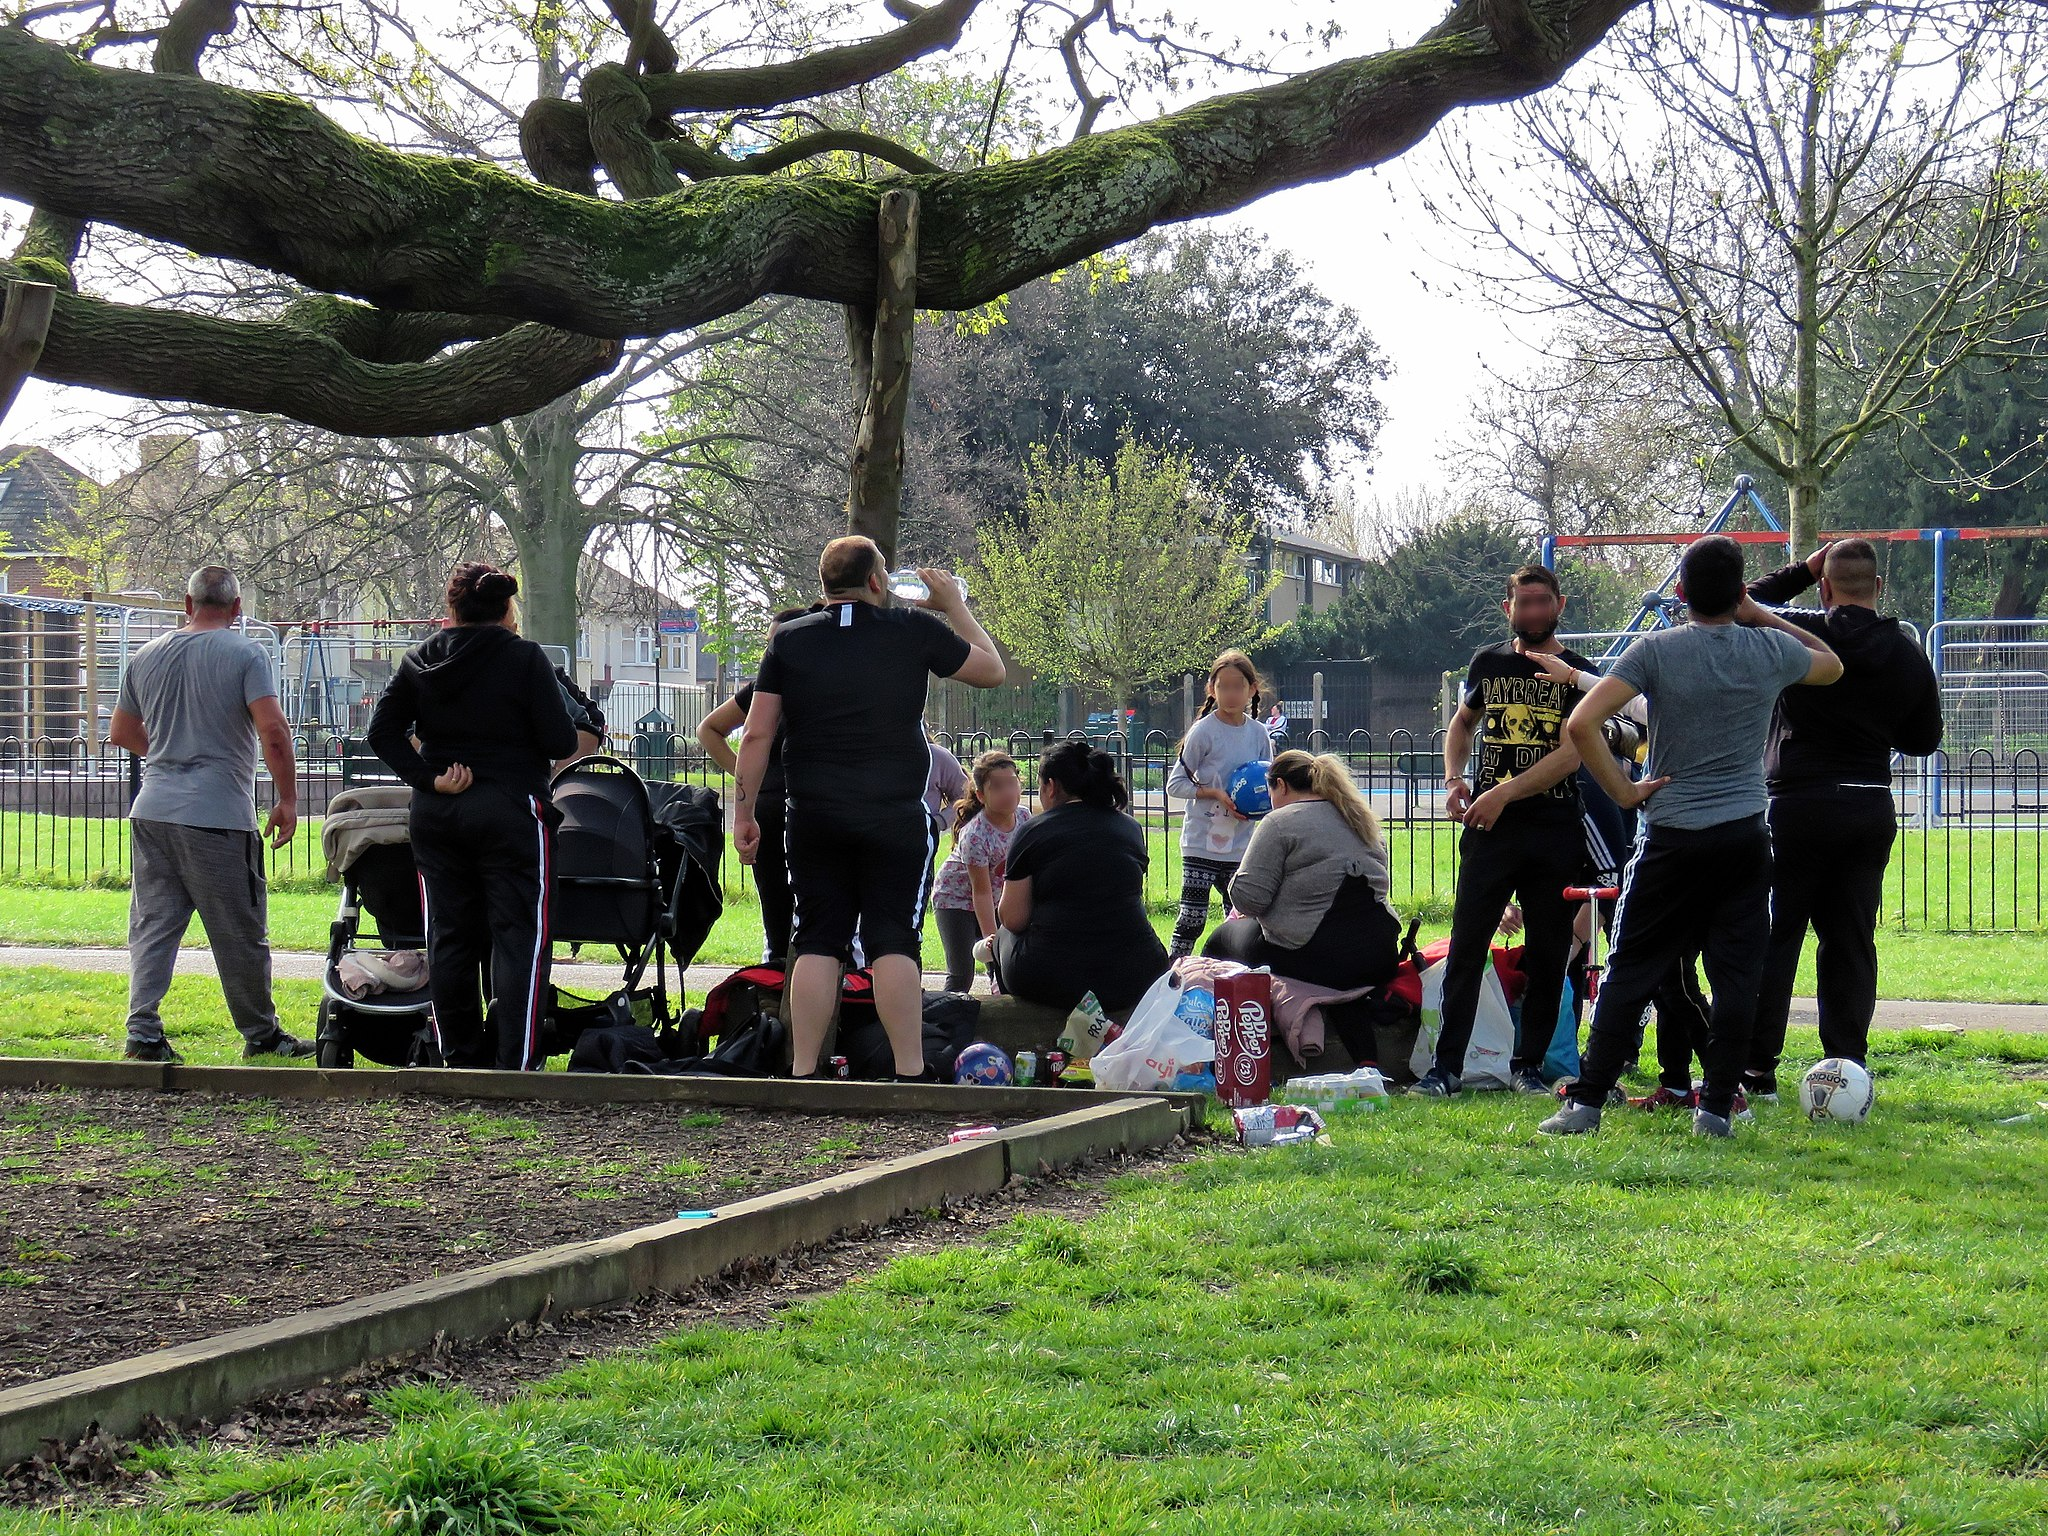 Community group takes exercise in Tottenham green space